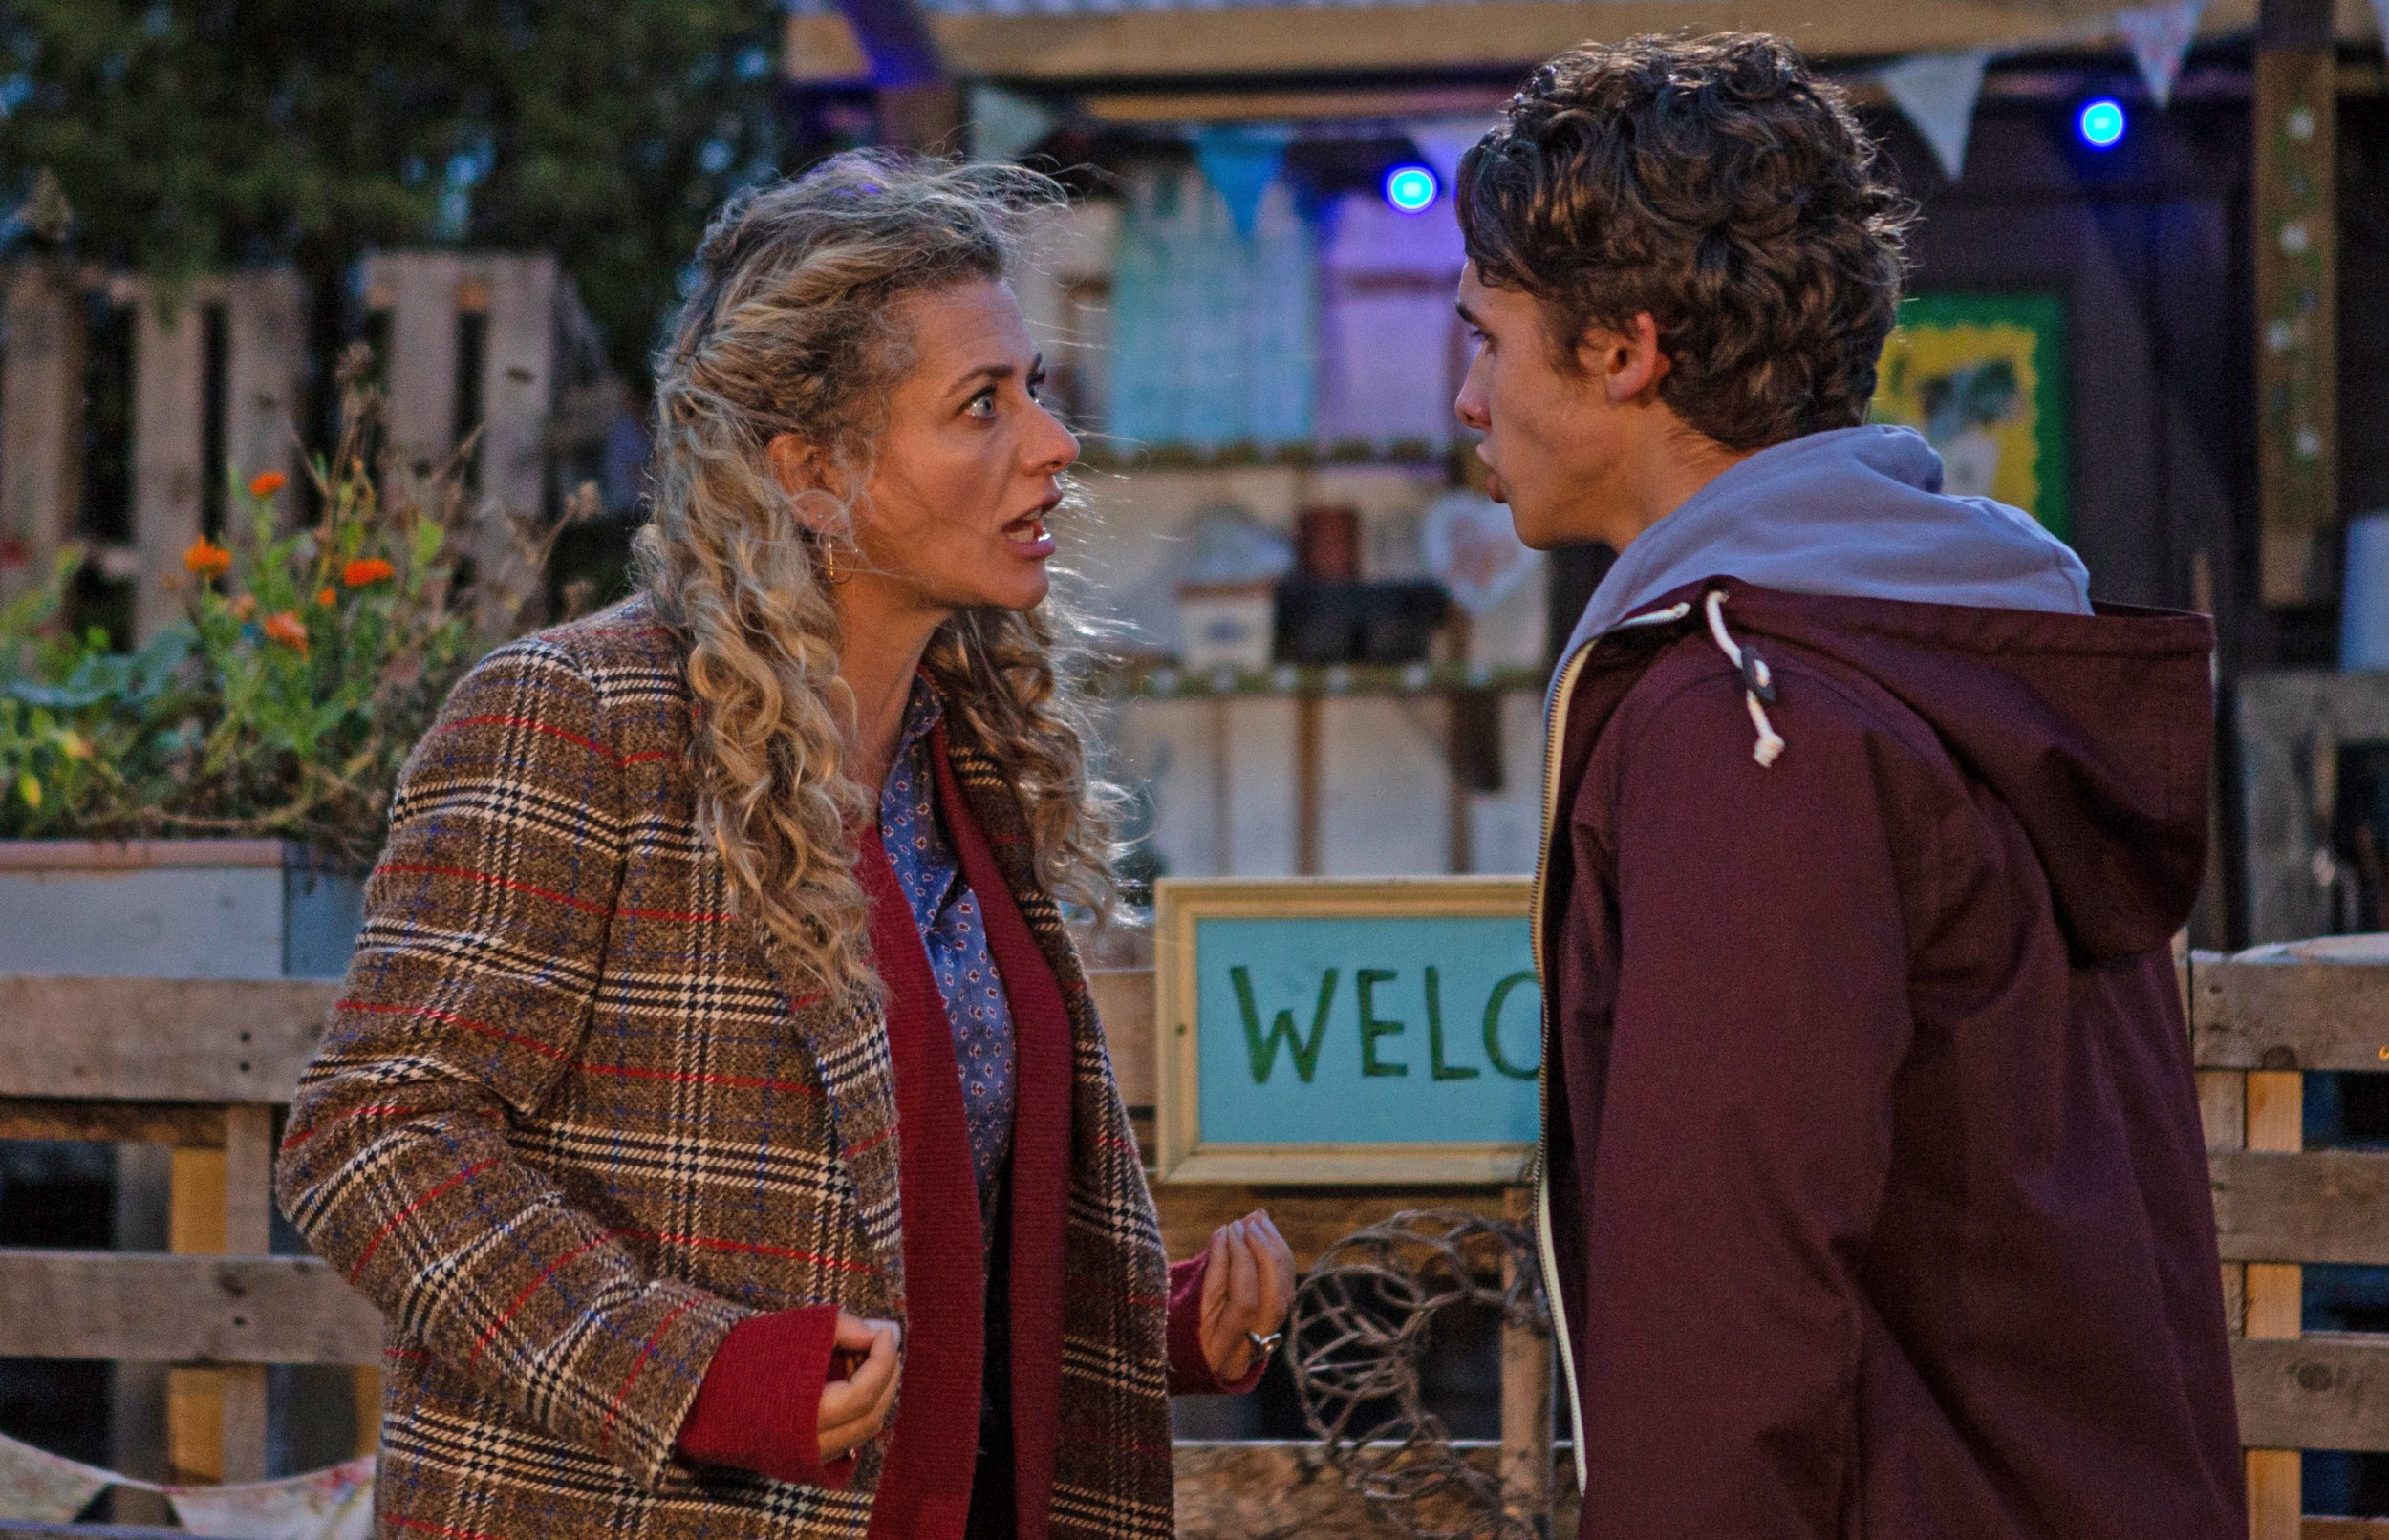 FROM ITV STRICT EMBARGO Weekly TV listings magazines (Not online) - Week 51 release date - Thursday 6 December 2018 All other Media including online - No Use Before Tuesday 11th December 2018 Emmerdale - Ep 9642 Wednesday 19th December 2018 A concerned Ellis tells David about Jacob Gallagher [JOE-WARREN PLANT] seeing an older girl and Maya is [LOUISA CLEIN] anxious over what Jacob has done and soon angrily confronts Jacob about confiding in Ellis. As she coldly tells him to leave her alone and keep quiet, Jacob??s left heartbroken and gutted. Picture contact - David.crook@itv.com Photographer - Amy Brammall This photograph is (C) ITV Plc and can only be reproduced for editorial purposes directly in connection with the programme or event mentioned above, or ITV plc. Once made available by ITV plc Picture Desk, this photograph can be reproduced once only up until the transmission [TX] date and no reproduction fee will be charged. Any subsequent usage may incur a fee. This photograph must not be manipulated [excluding basic cropping] in a manner which alters the visual appearance of the person photographed deemed detrimental or inappropriate by ITV plc Picture Desk. This photograph must not be syndicated to any other company, publication or website, or permanently archived, without the express written permission of ITV Picture Desk. Full Terms and conditions are available on www.itv.com/presscentre/itvpictures/terms